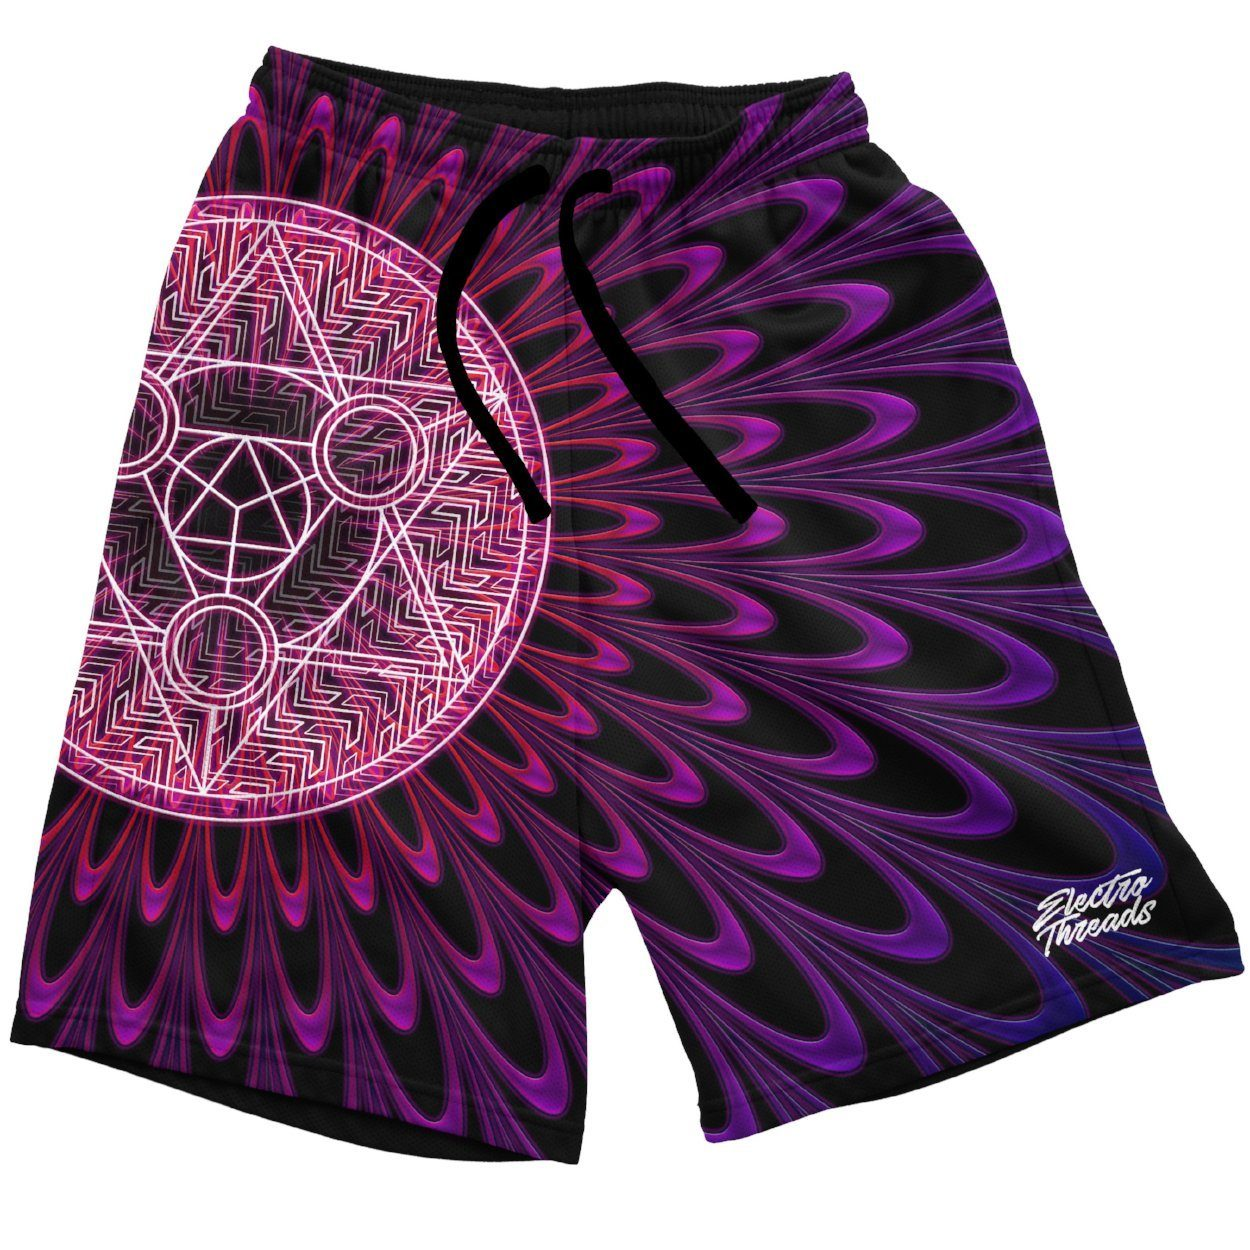 Radiate Swim Trunks Mens Swim Trunks T6